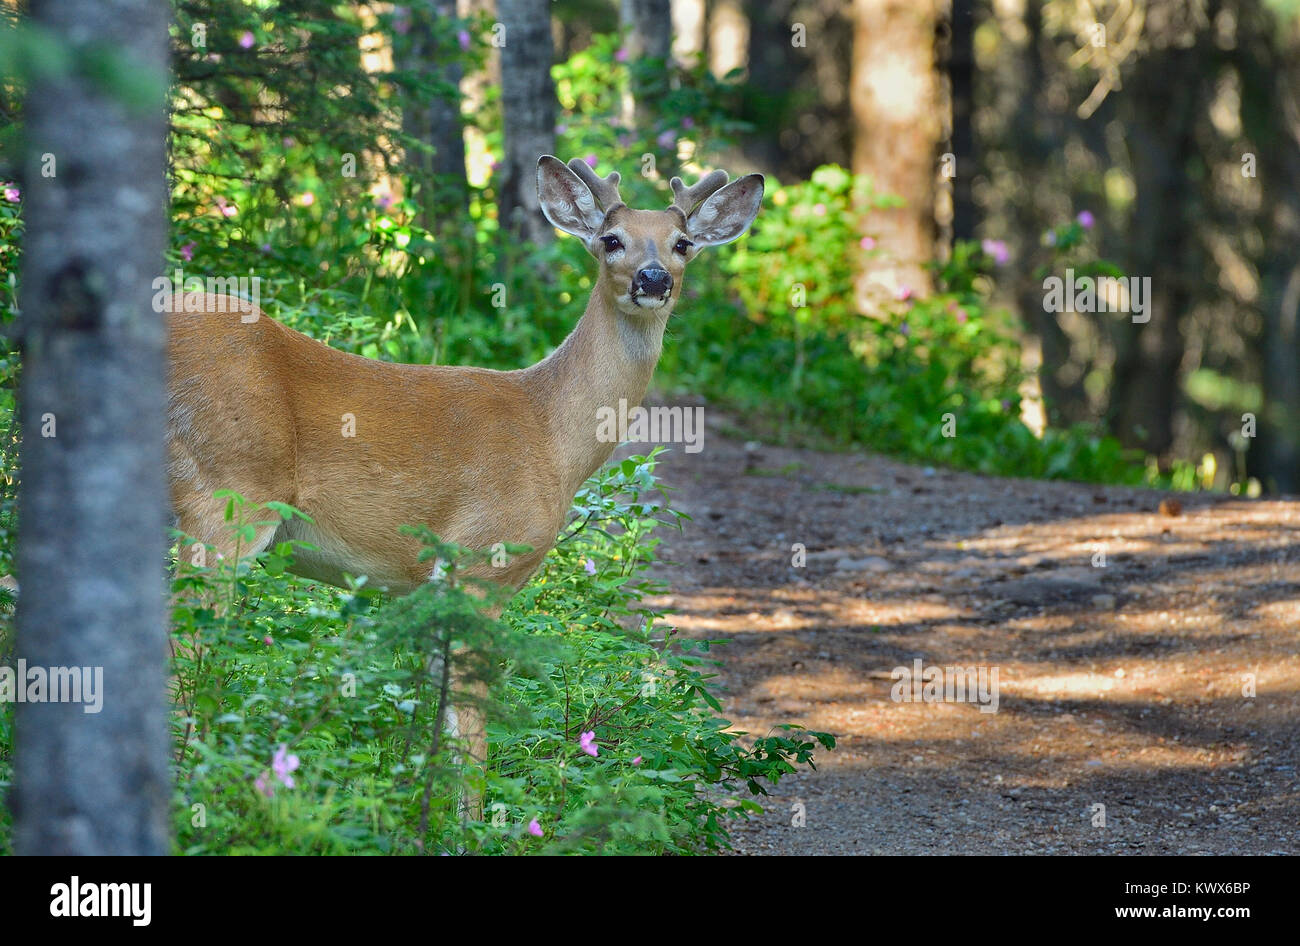 A white-tailed deer (Odocoileus virginianus) steping out into the open on a hiking trail near Hinton Alberta Canada. - Stock Image